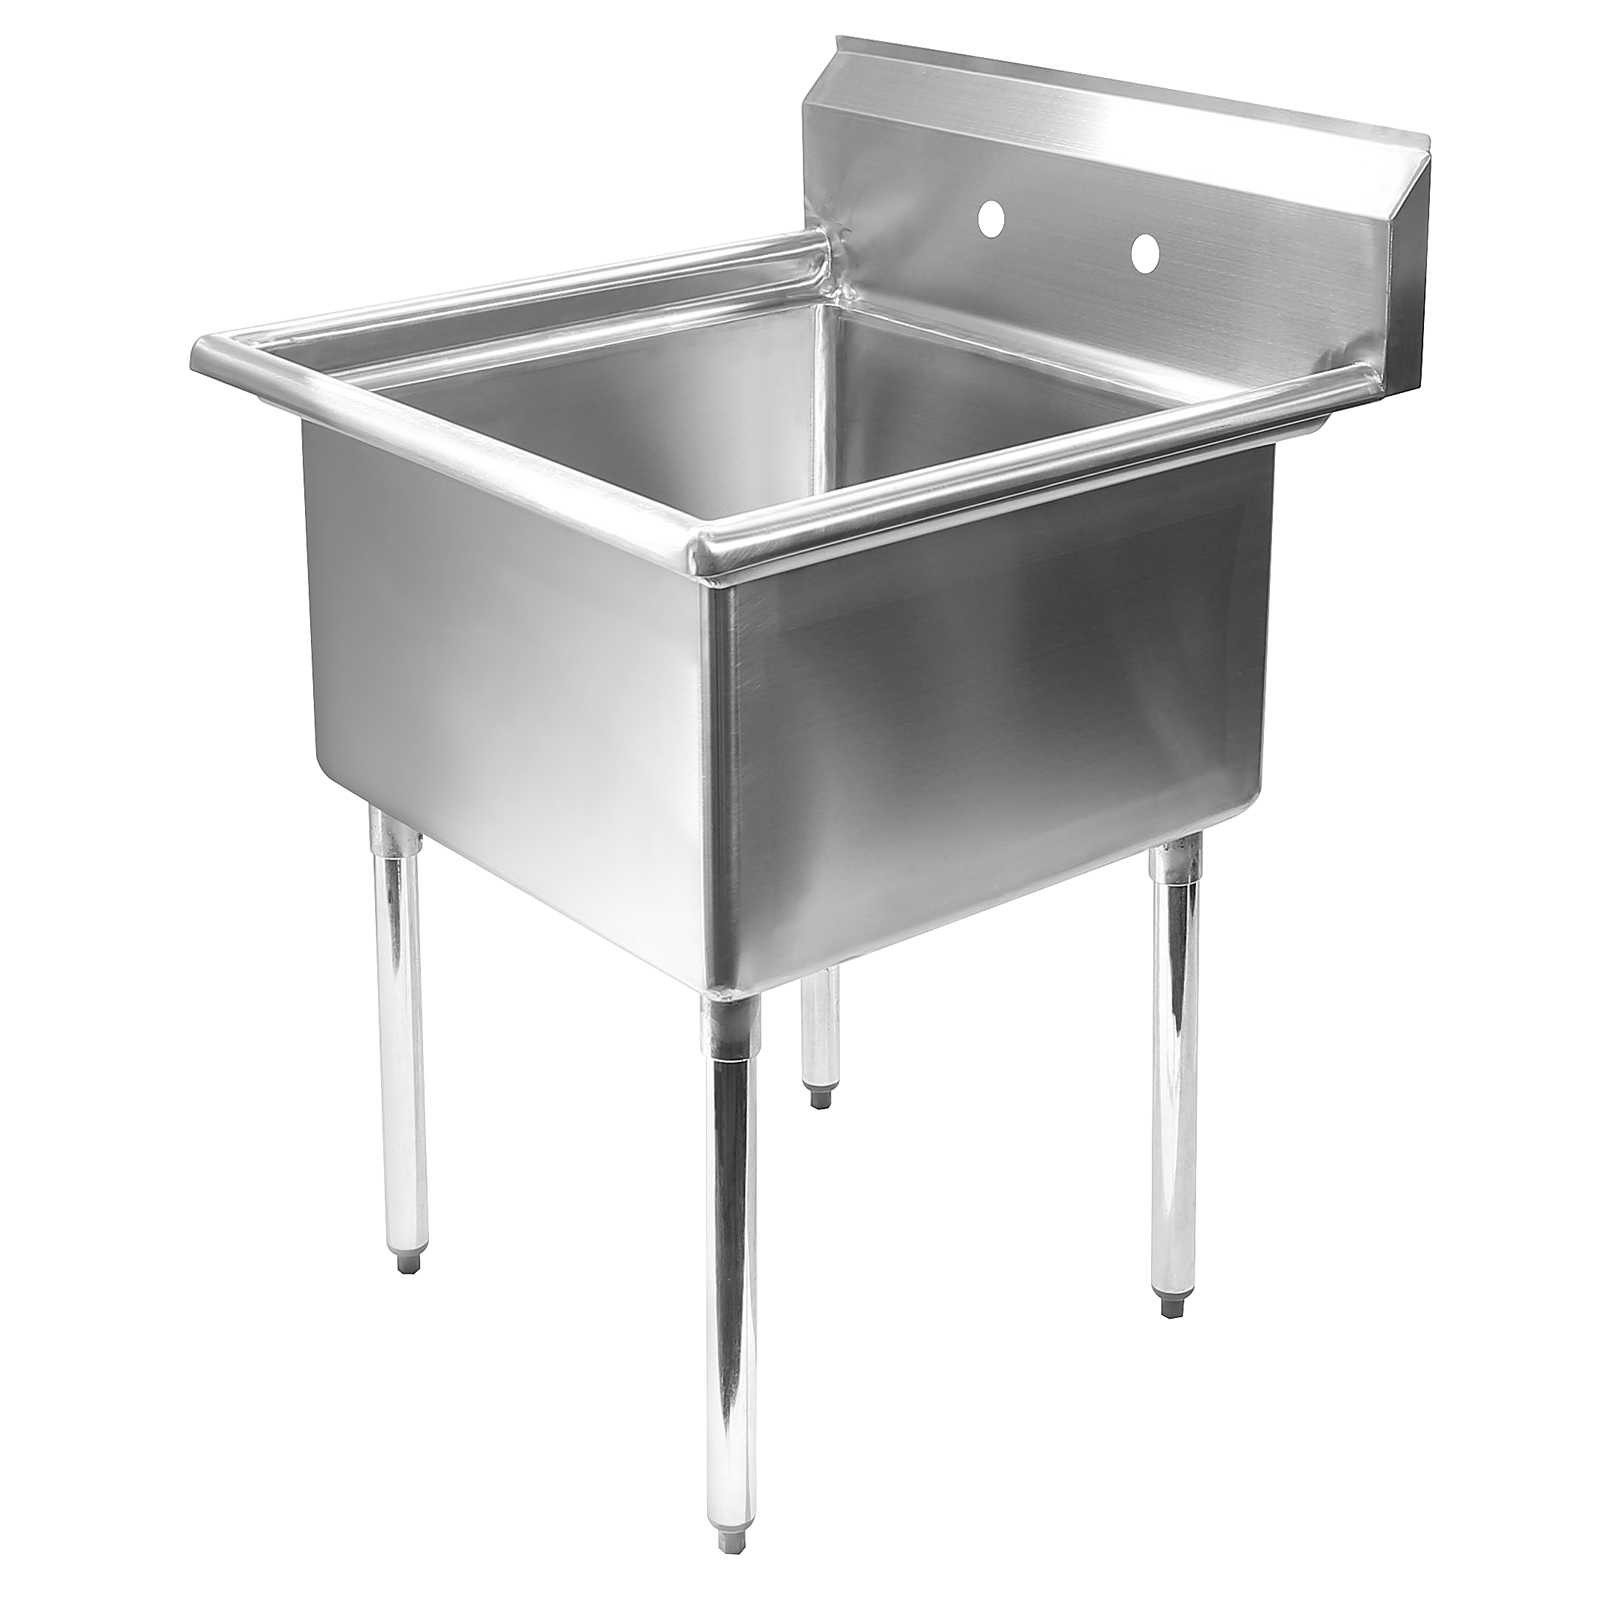 stainless steel commercial kitchen utility sink 30 wide ebay. Black Bedroom Furniture Sets. Home Design Ideas